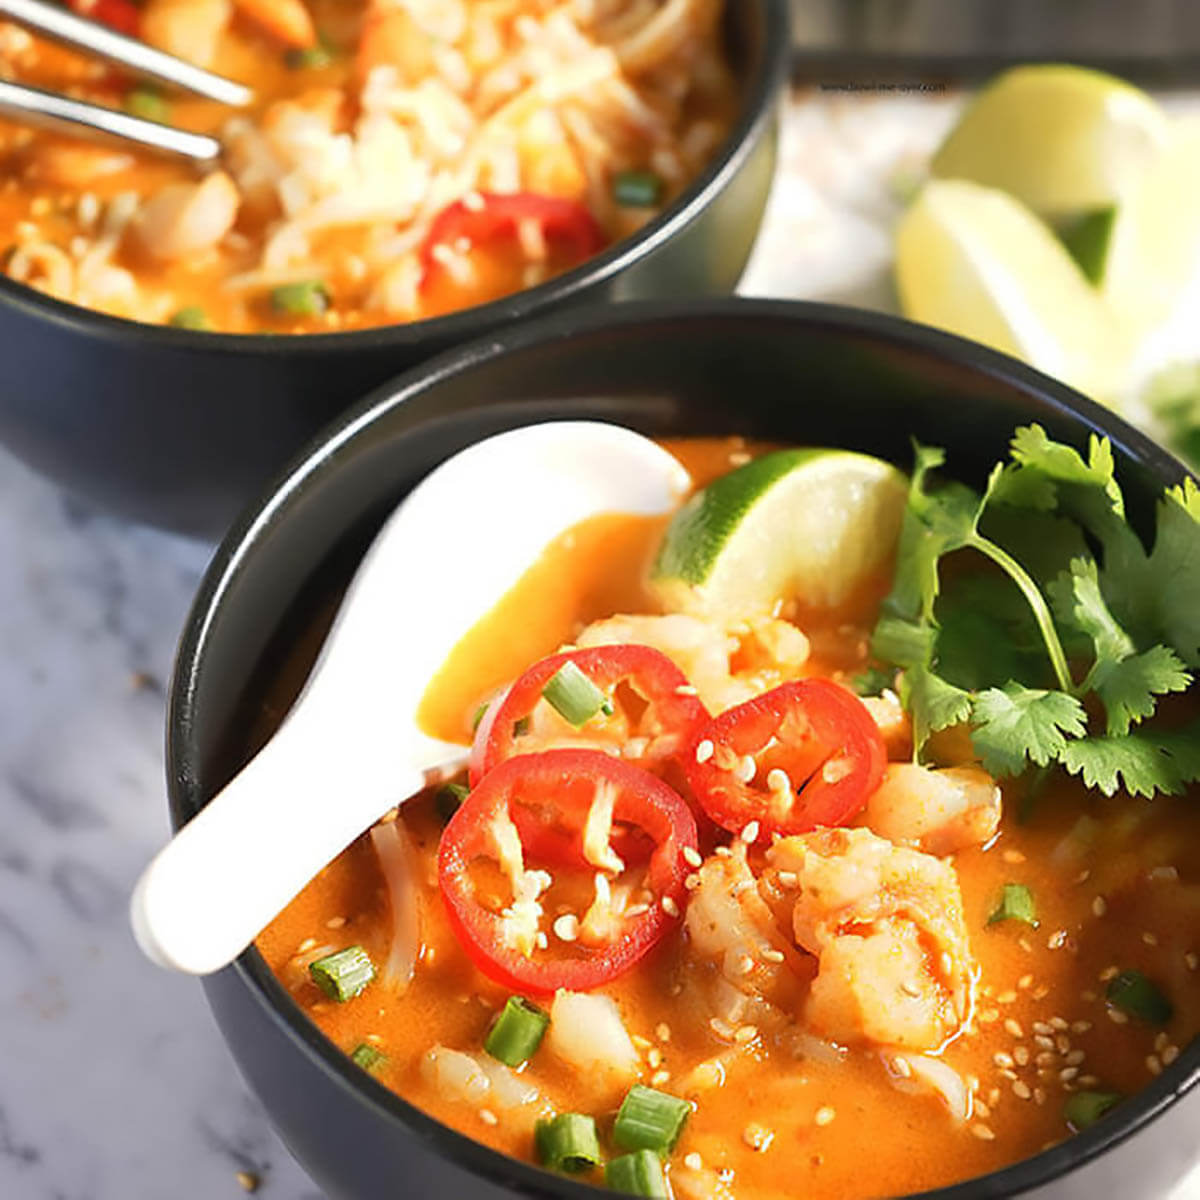 Bowls of Thai Noodle Soup with spoon.